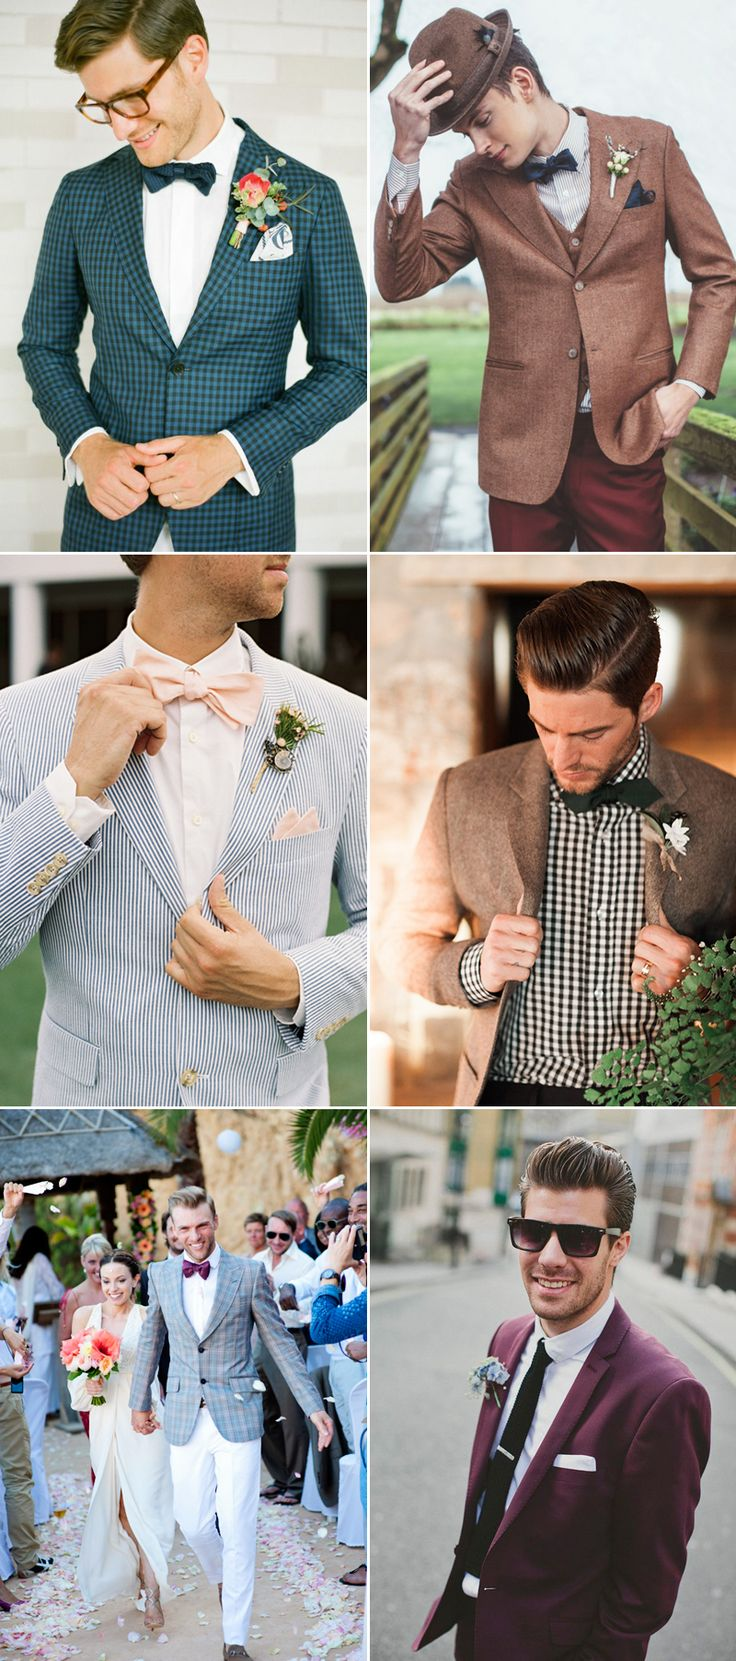 How To Style Your Groom Vintage Ways and Items to Create the Perfect Vintage-Inspired Groom Attire!